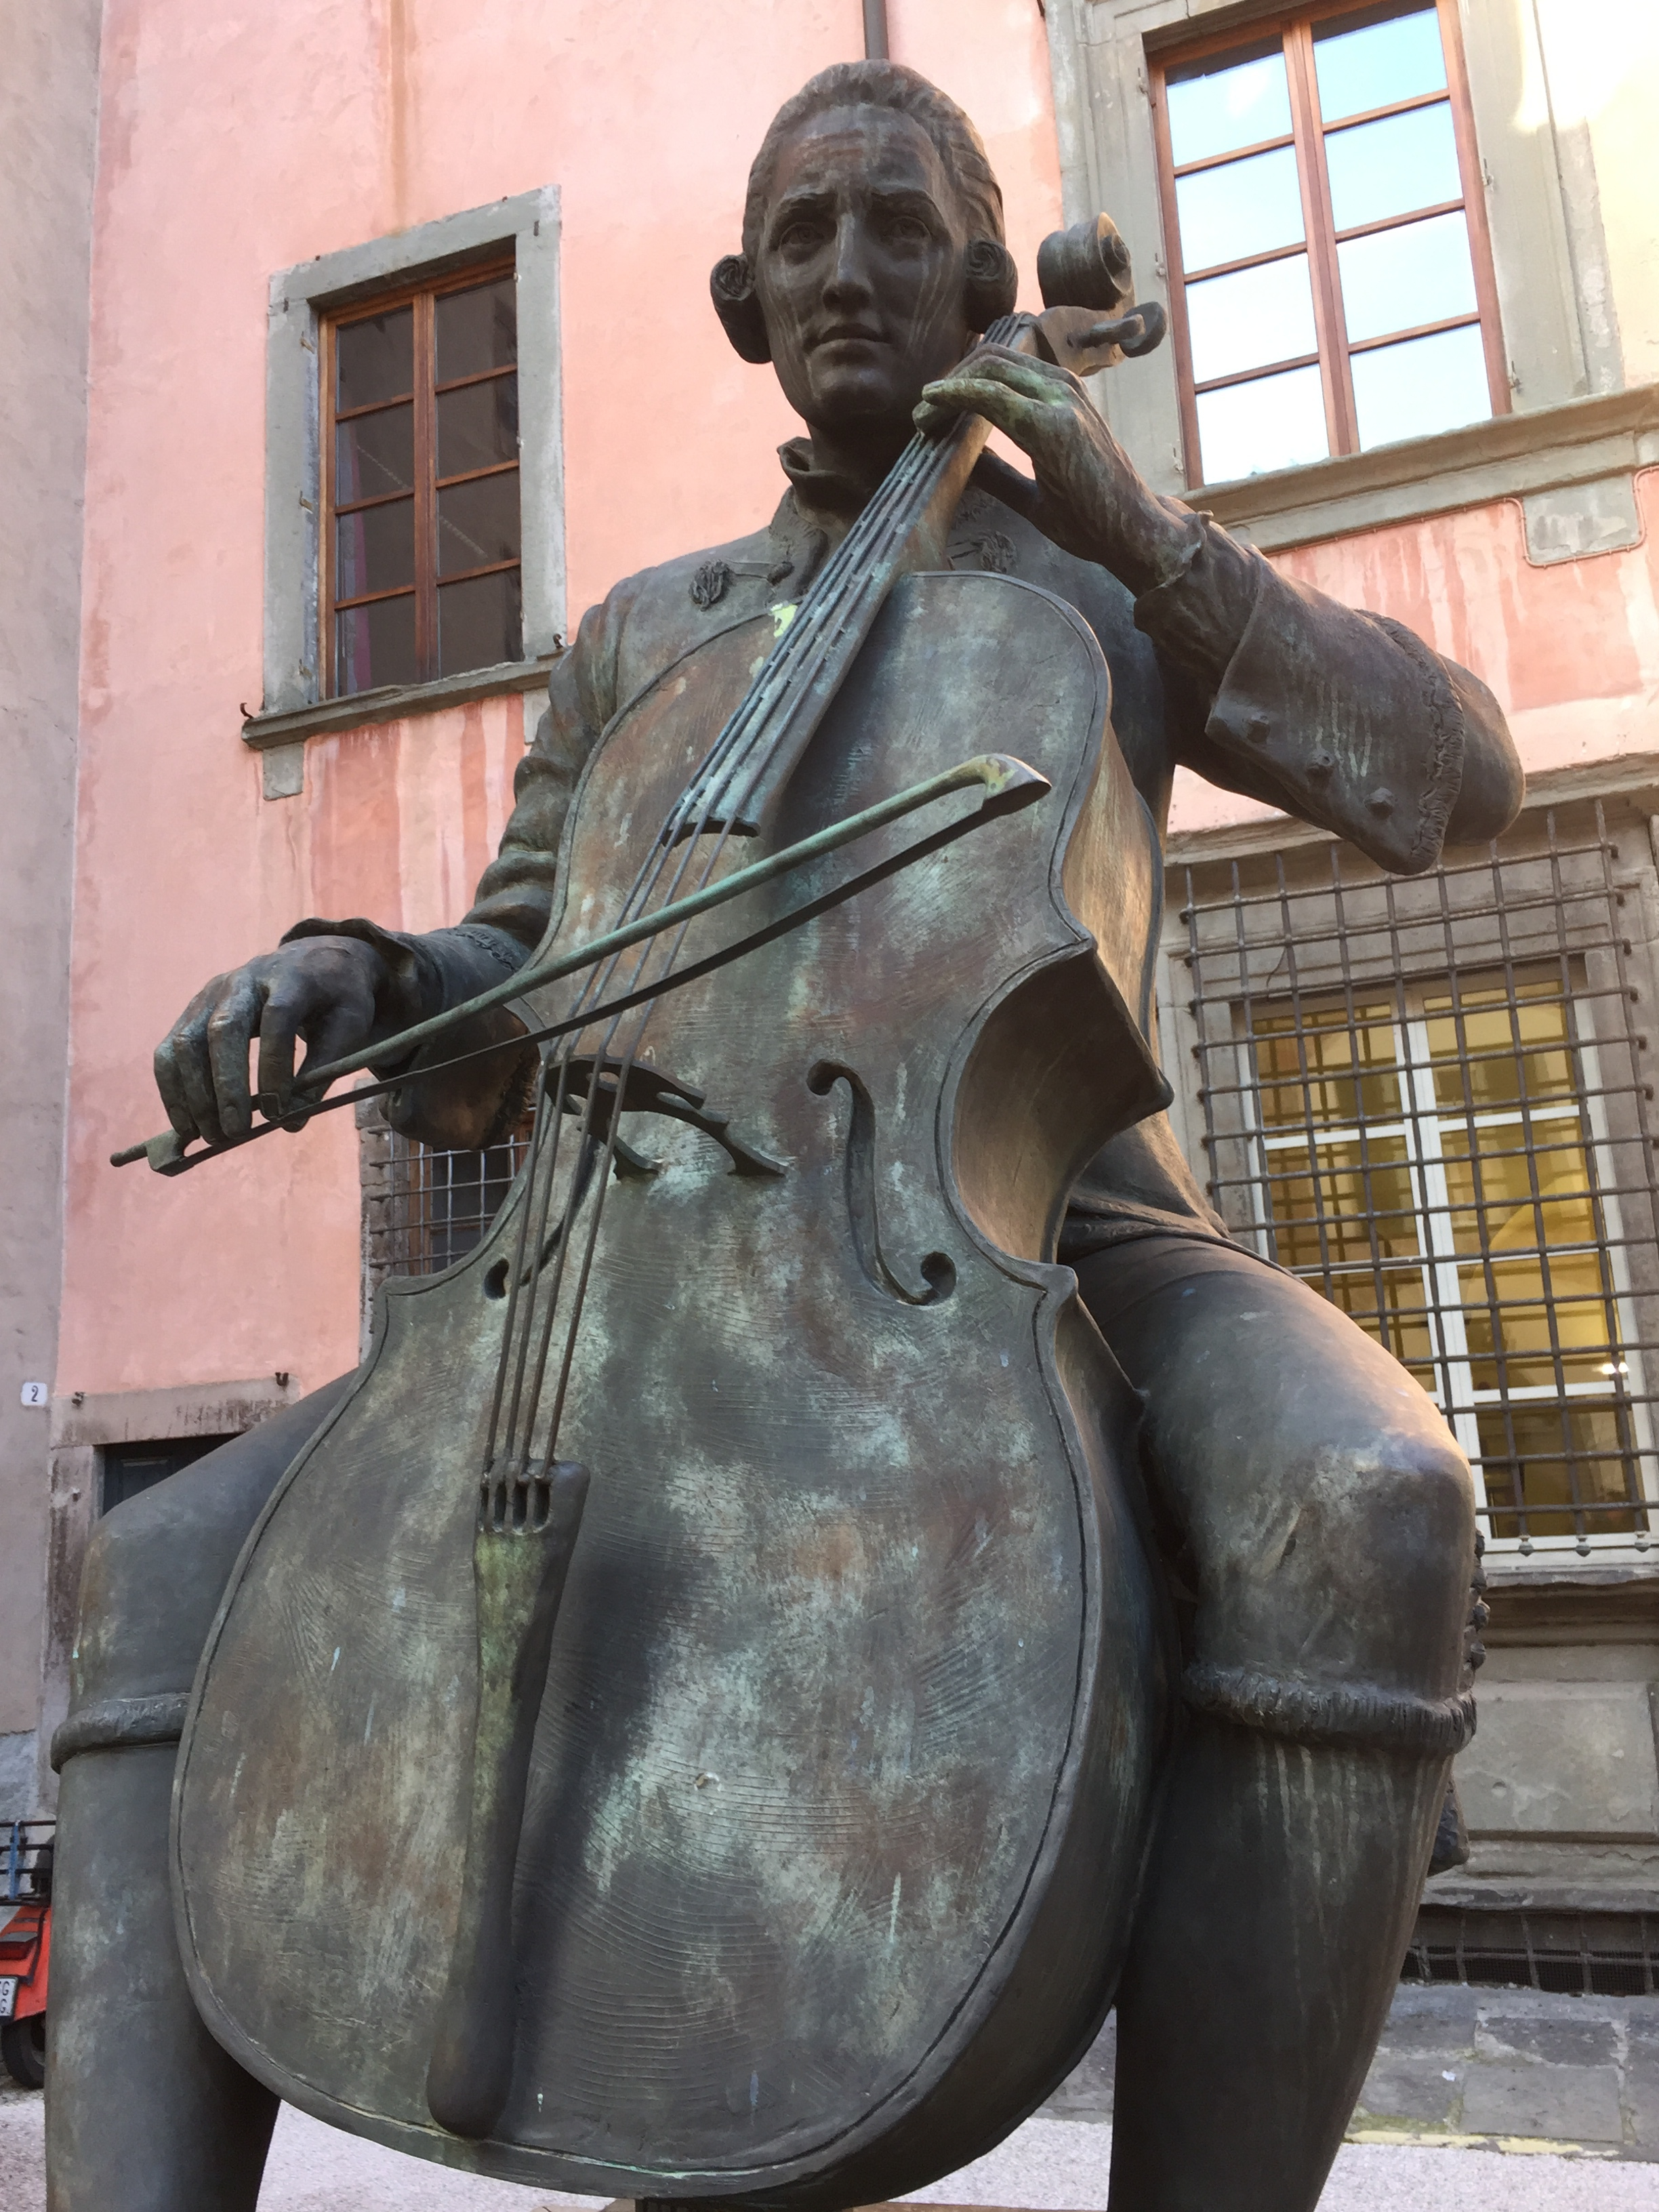 A great cellist - especially since his bow defied physics!